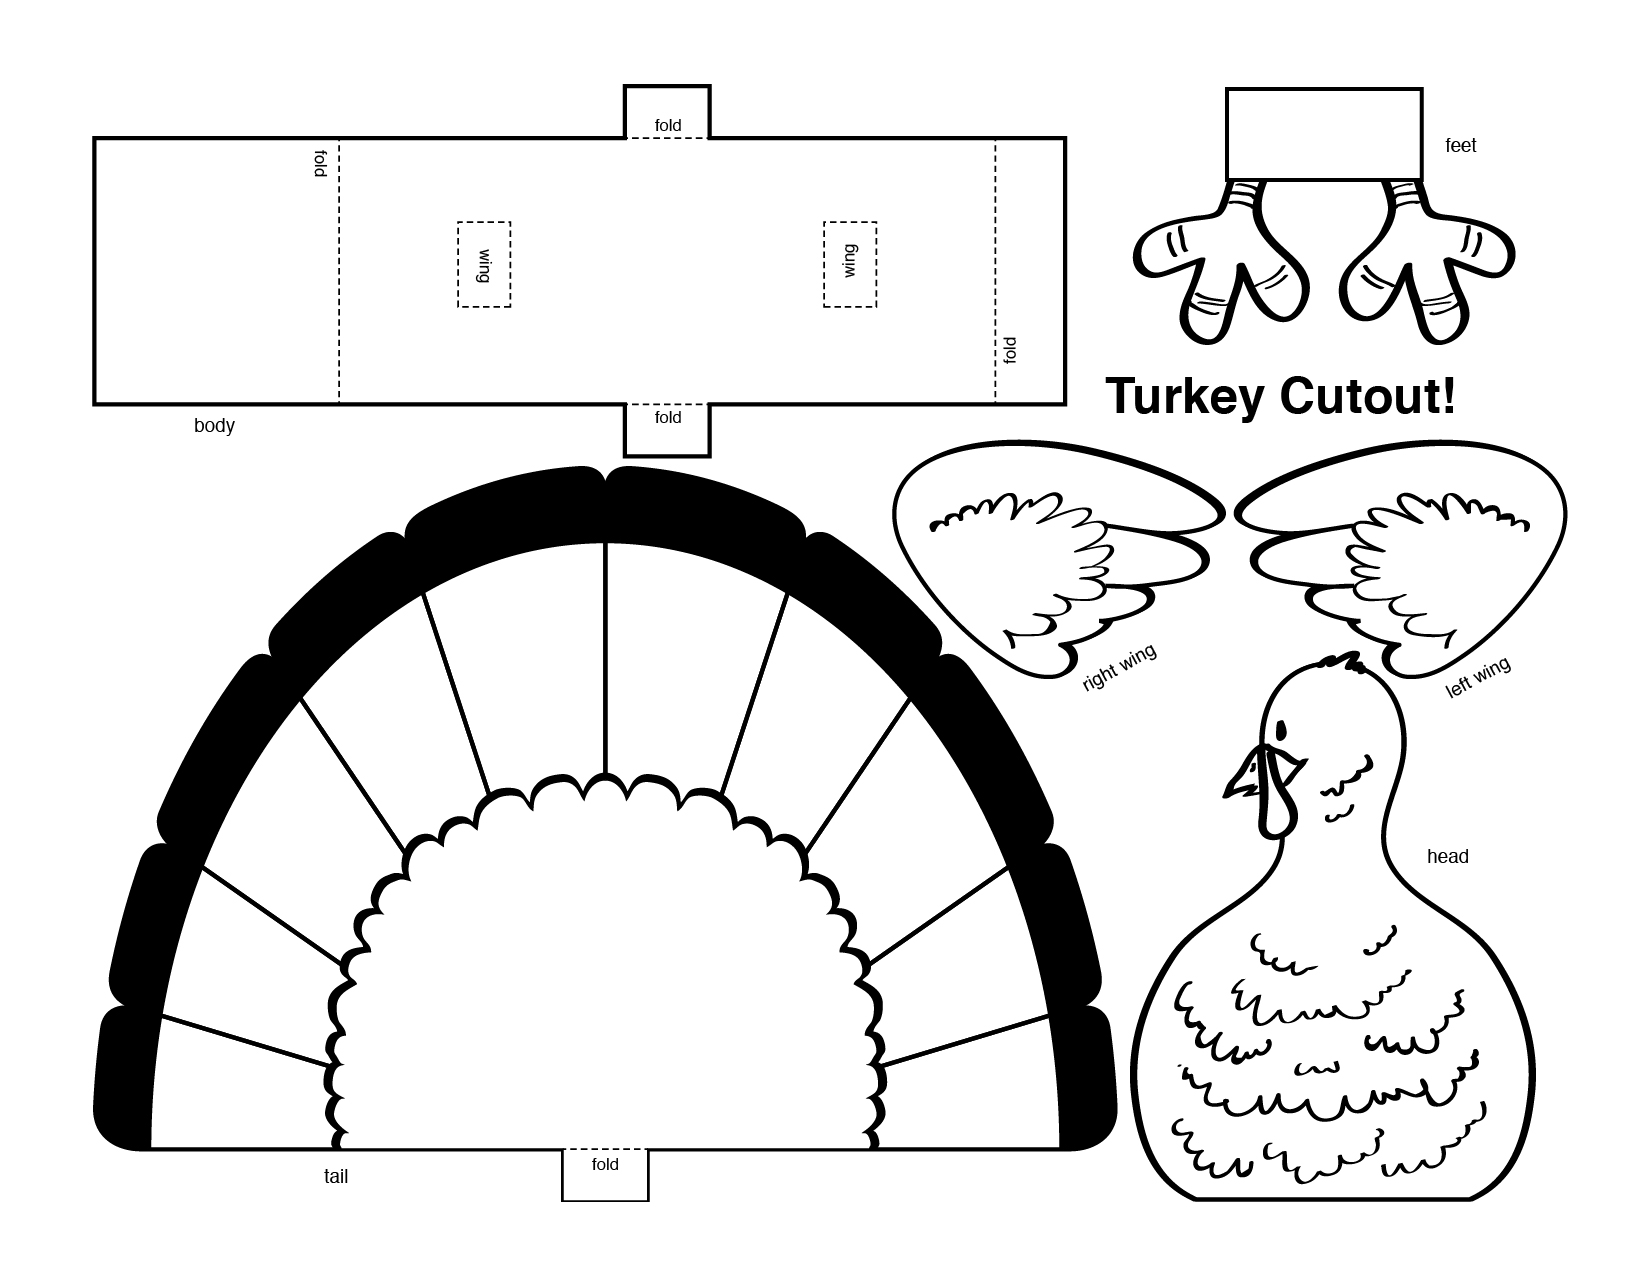 6 Images of Turkey Cutouts Printable Free